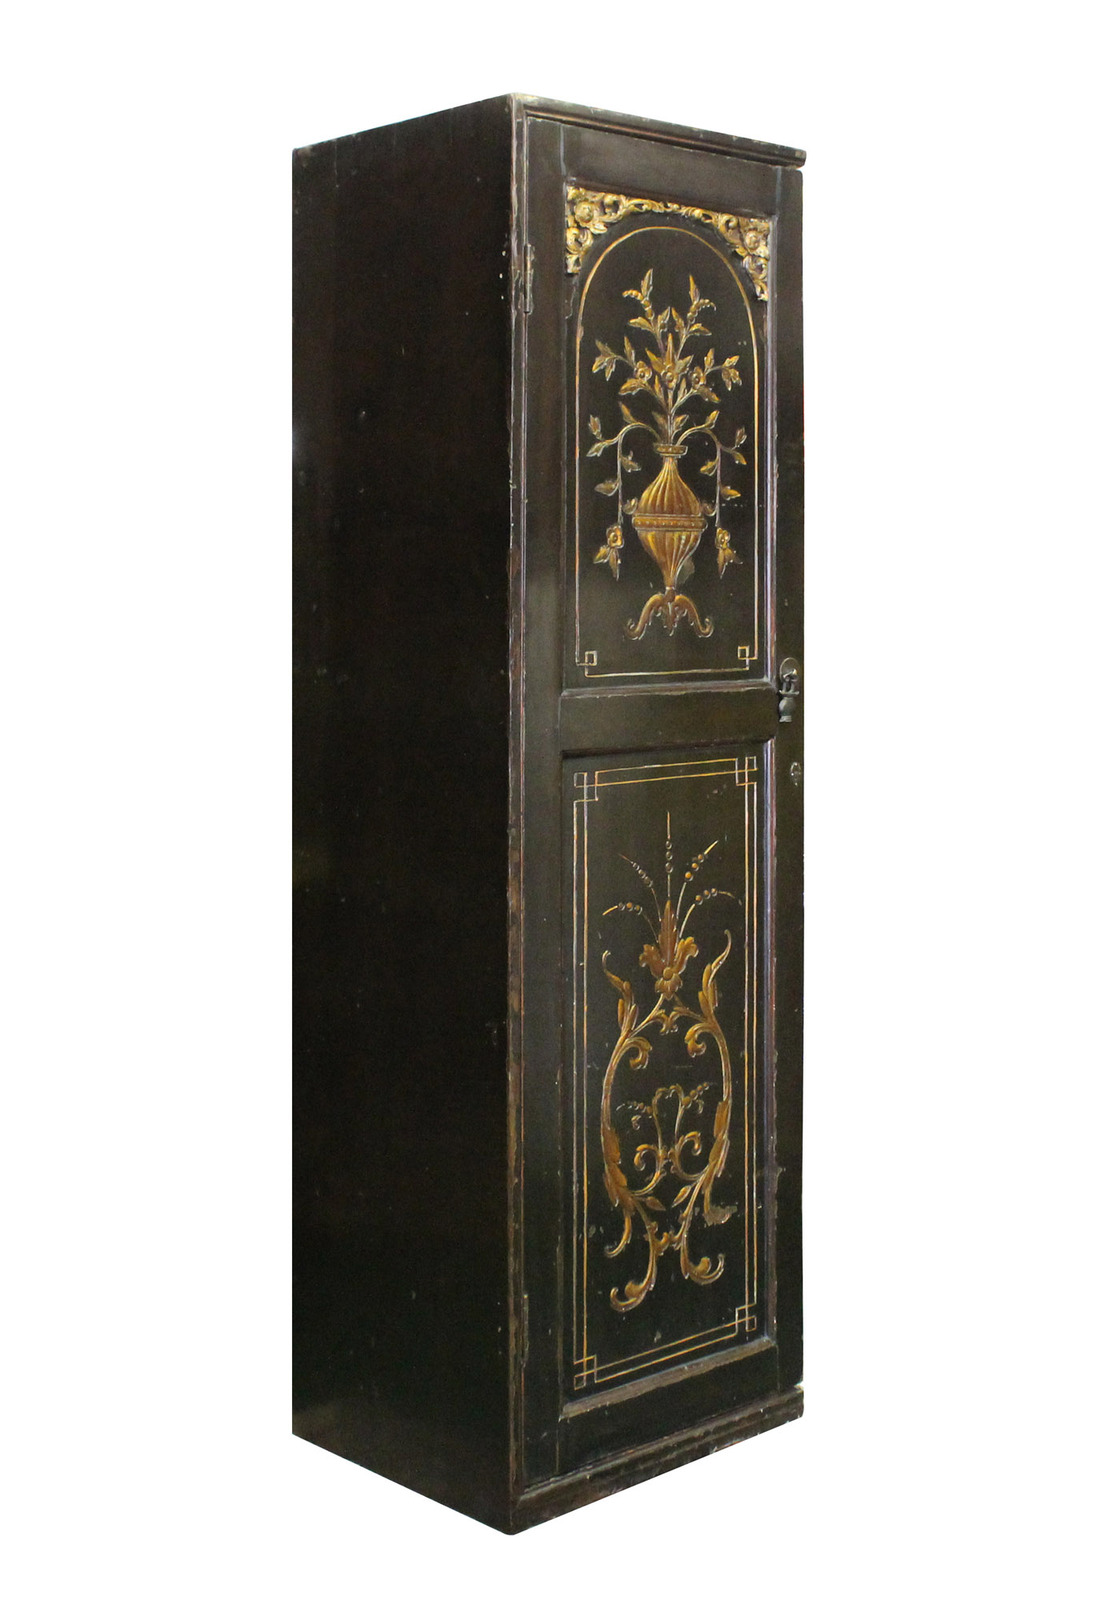 Primary image for Chinese Vintage Golden Graphic Dresser Cabinet cs1465